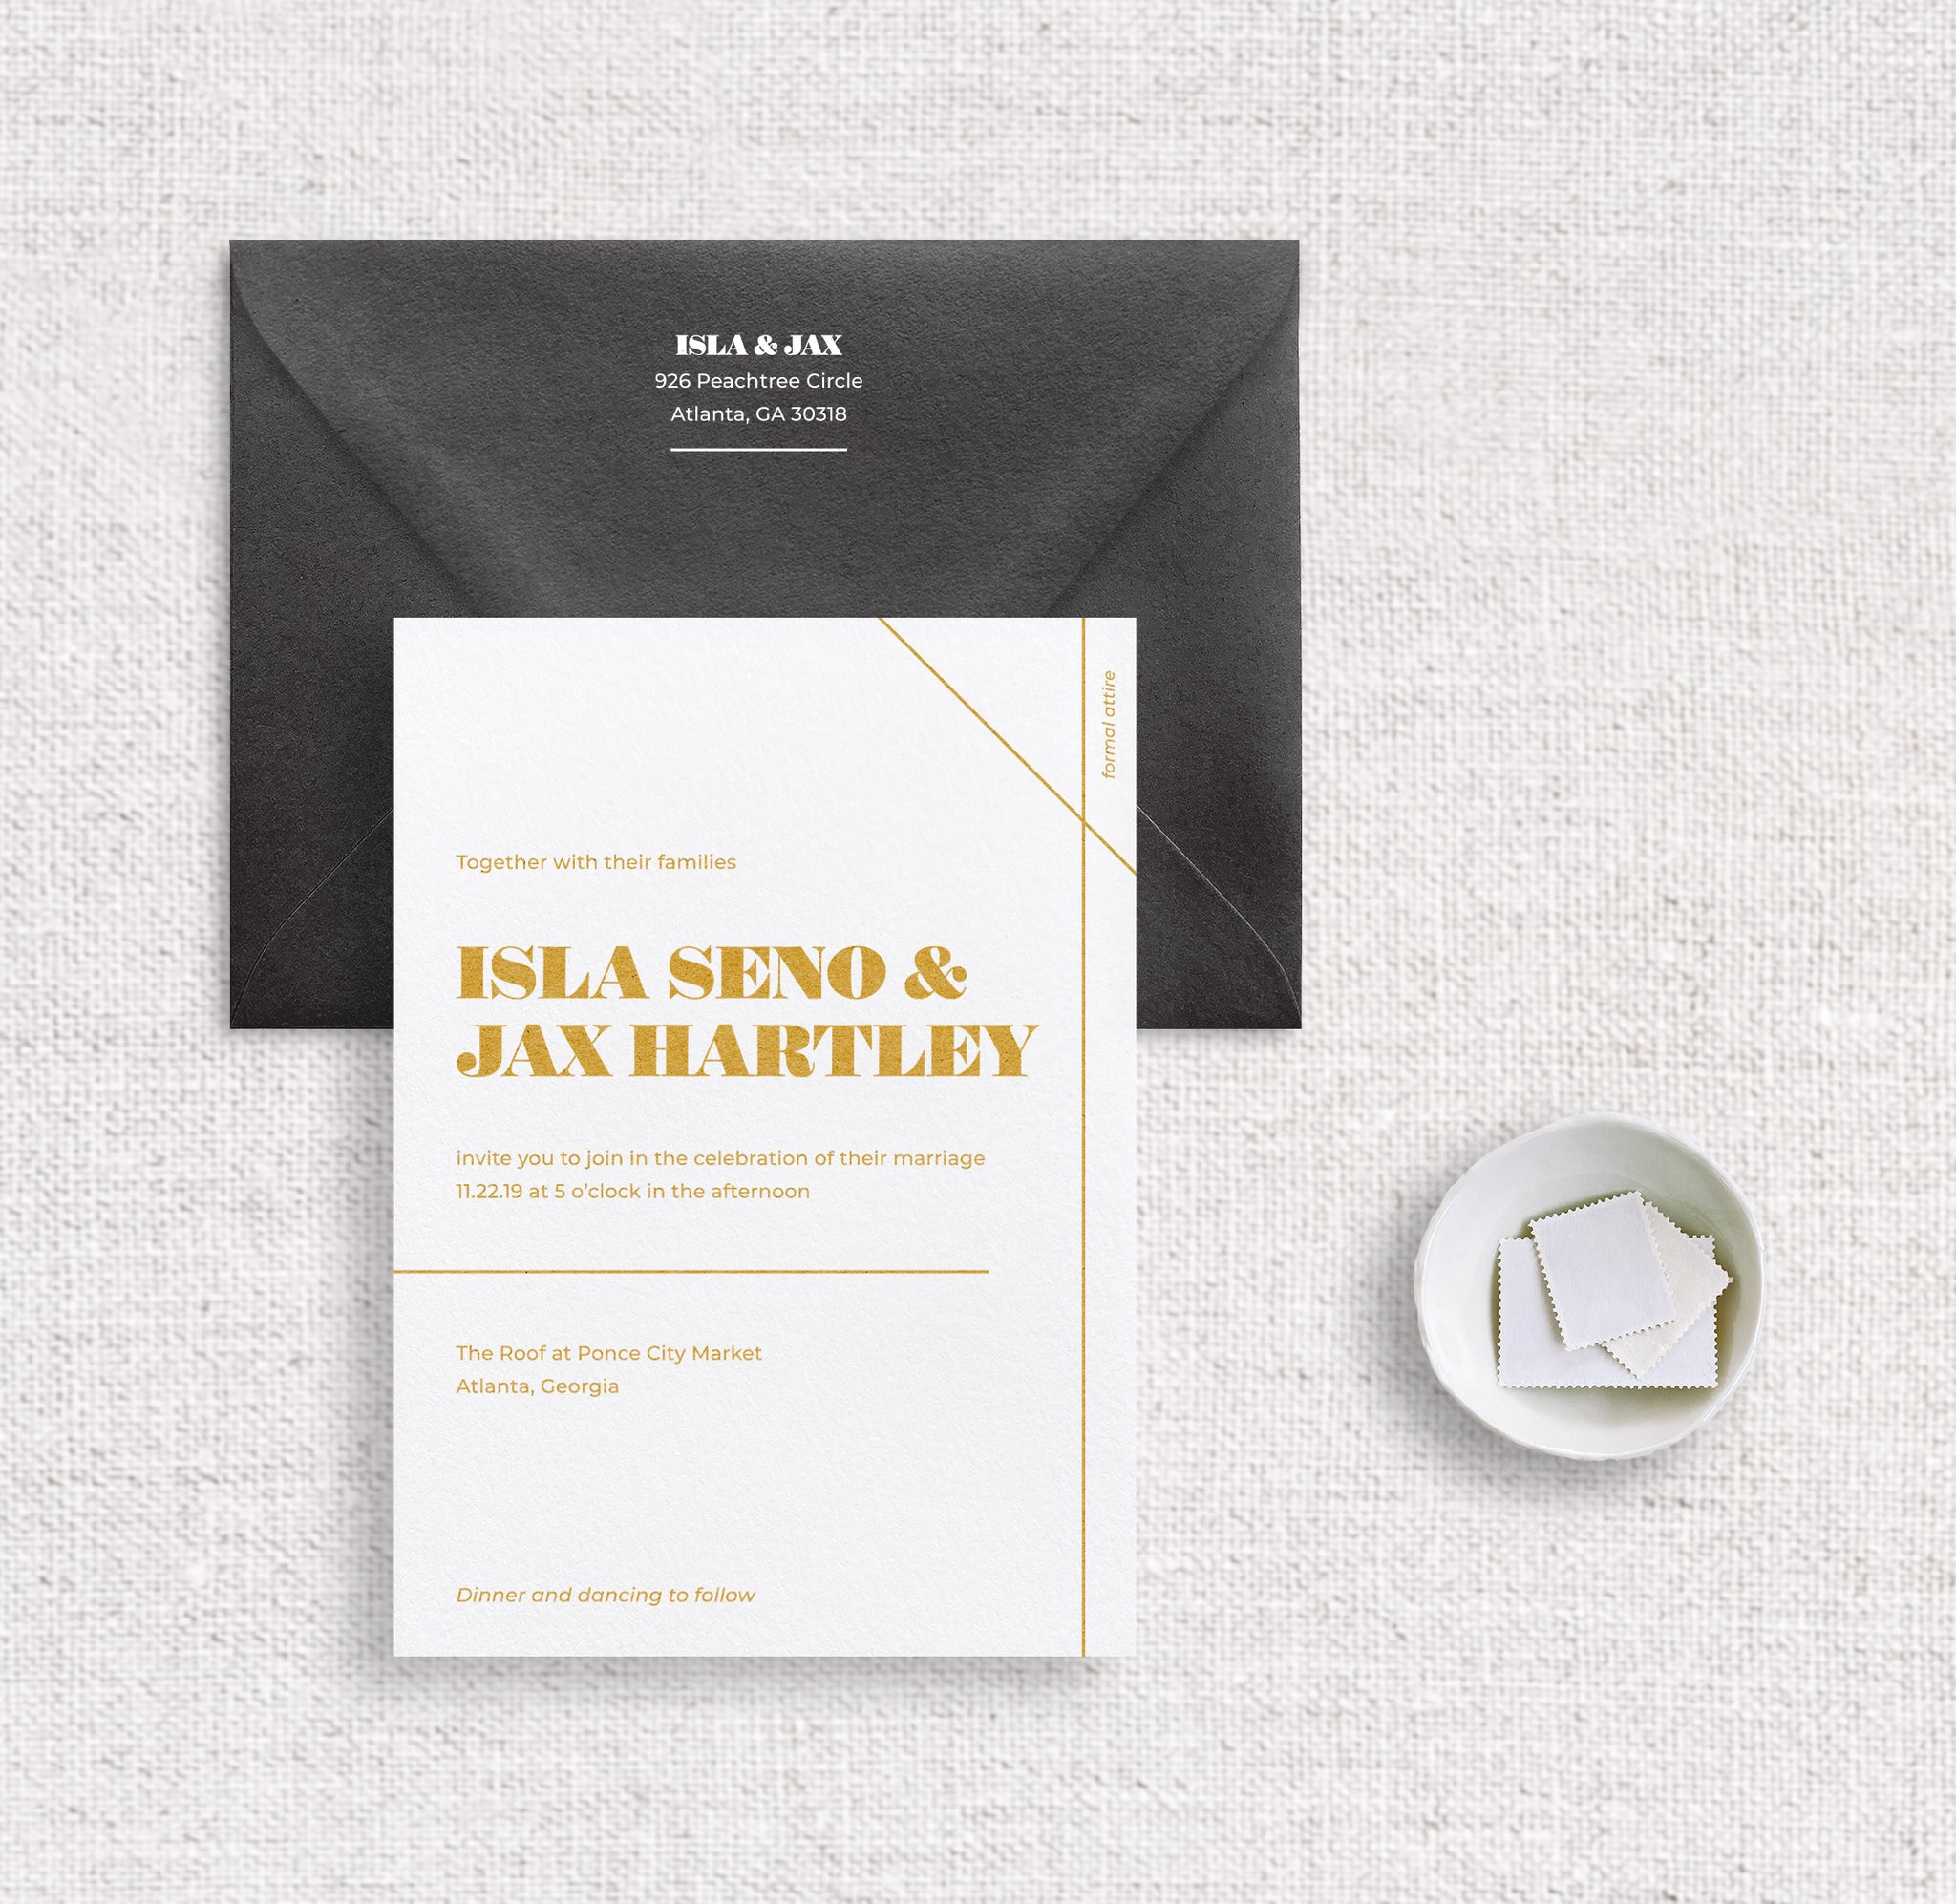 Isla invitation digitally printed on white stock in ochre ink and black envelope digitally printed in white ink